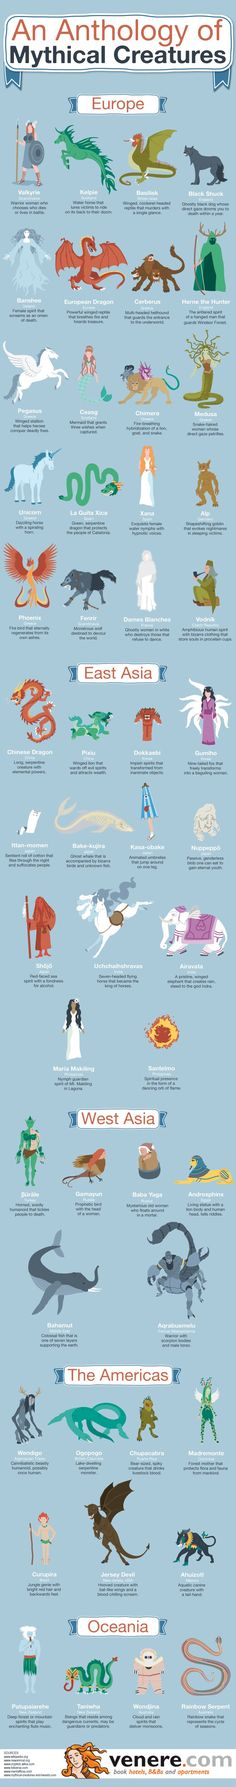 Mythology + Religion: An Anthology of Mythological Creatures Infographic Story Inspiration, Writing Inspiration, Legendary Creature, Mythological Creatures, Mythological Monsters, Mythical Creatures List, Japanese Mythical Creatures, Gods And Goddesses, Greek Mythology Gods